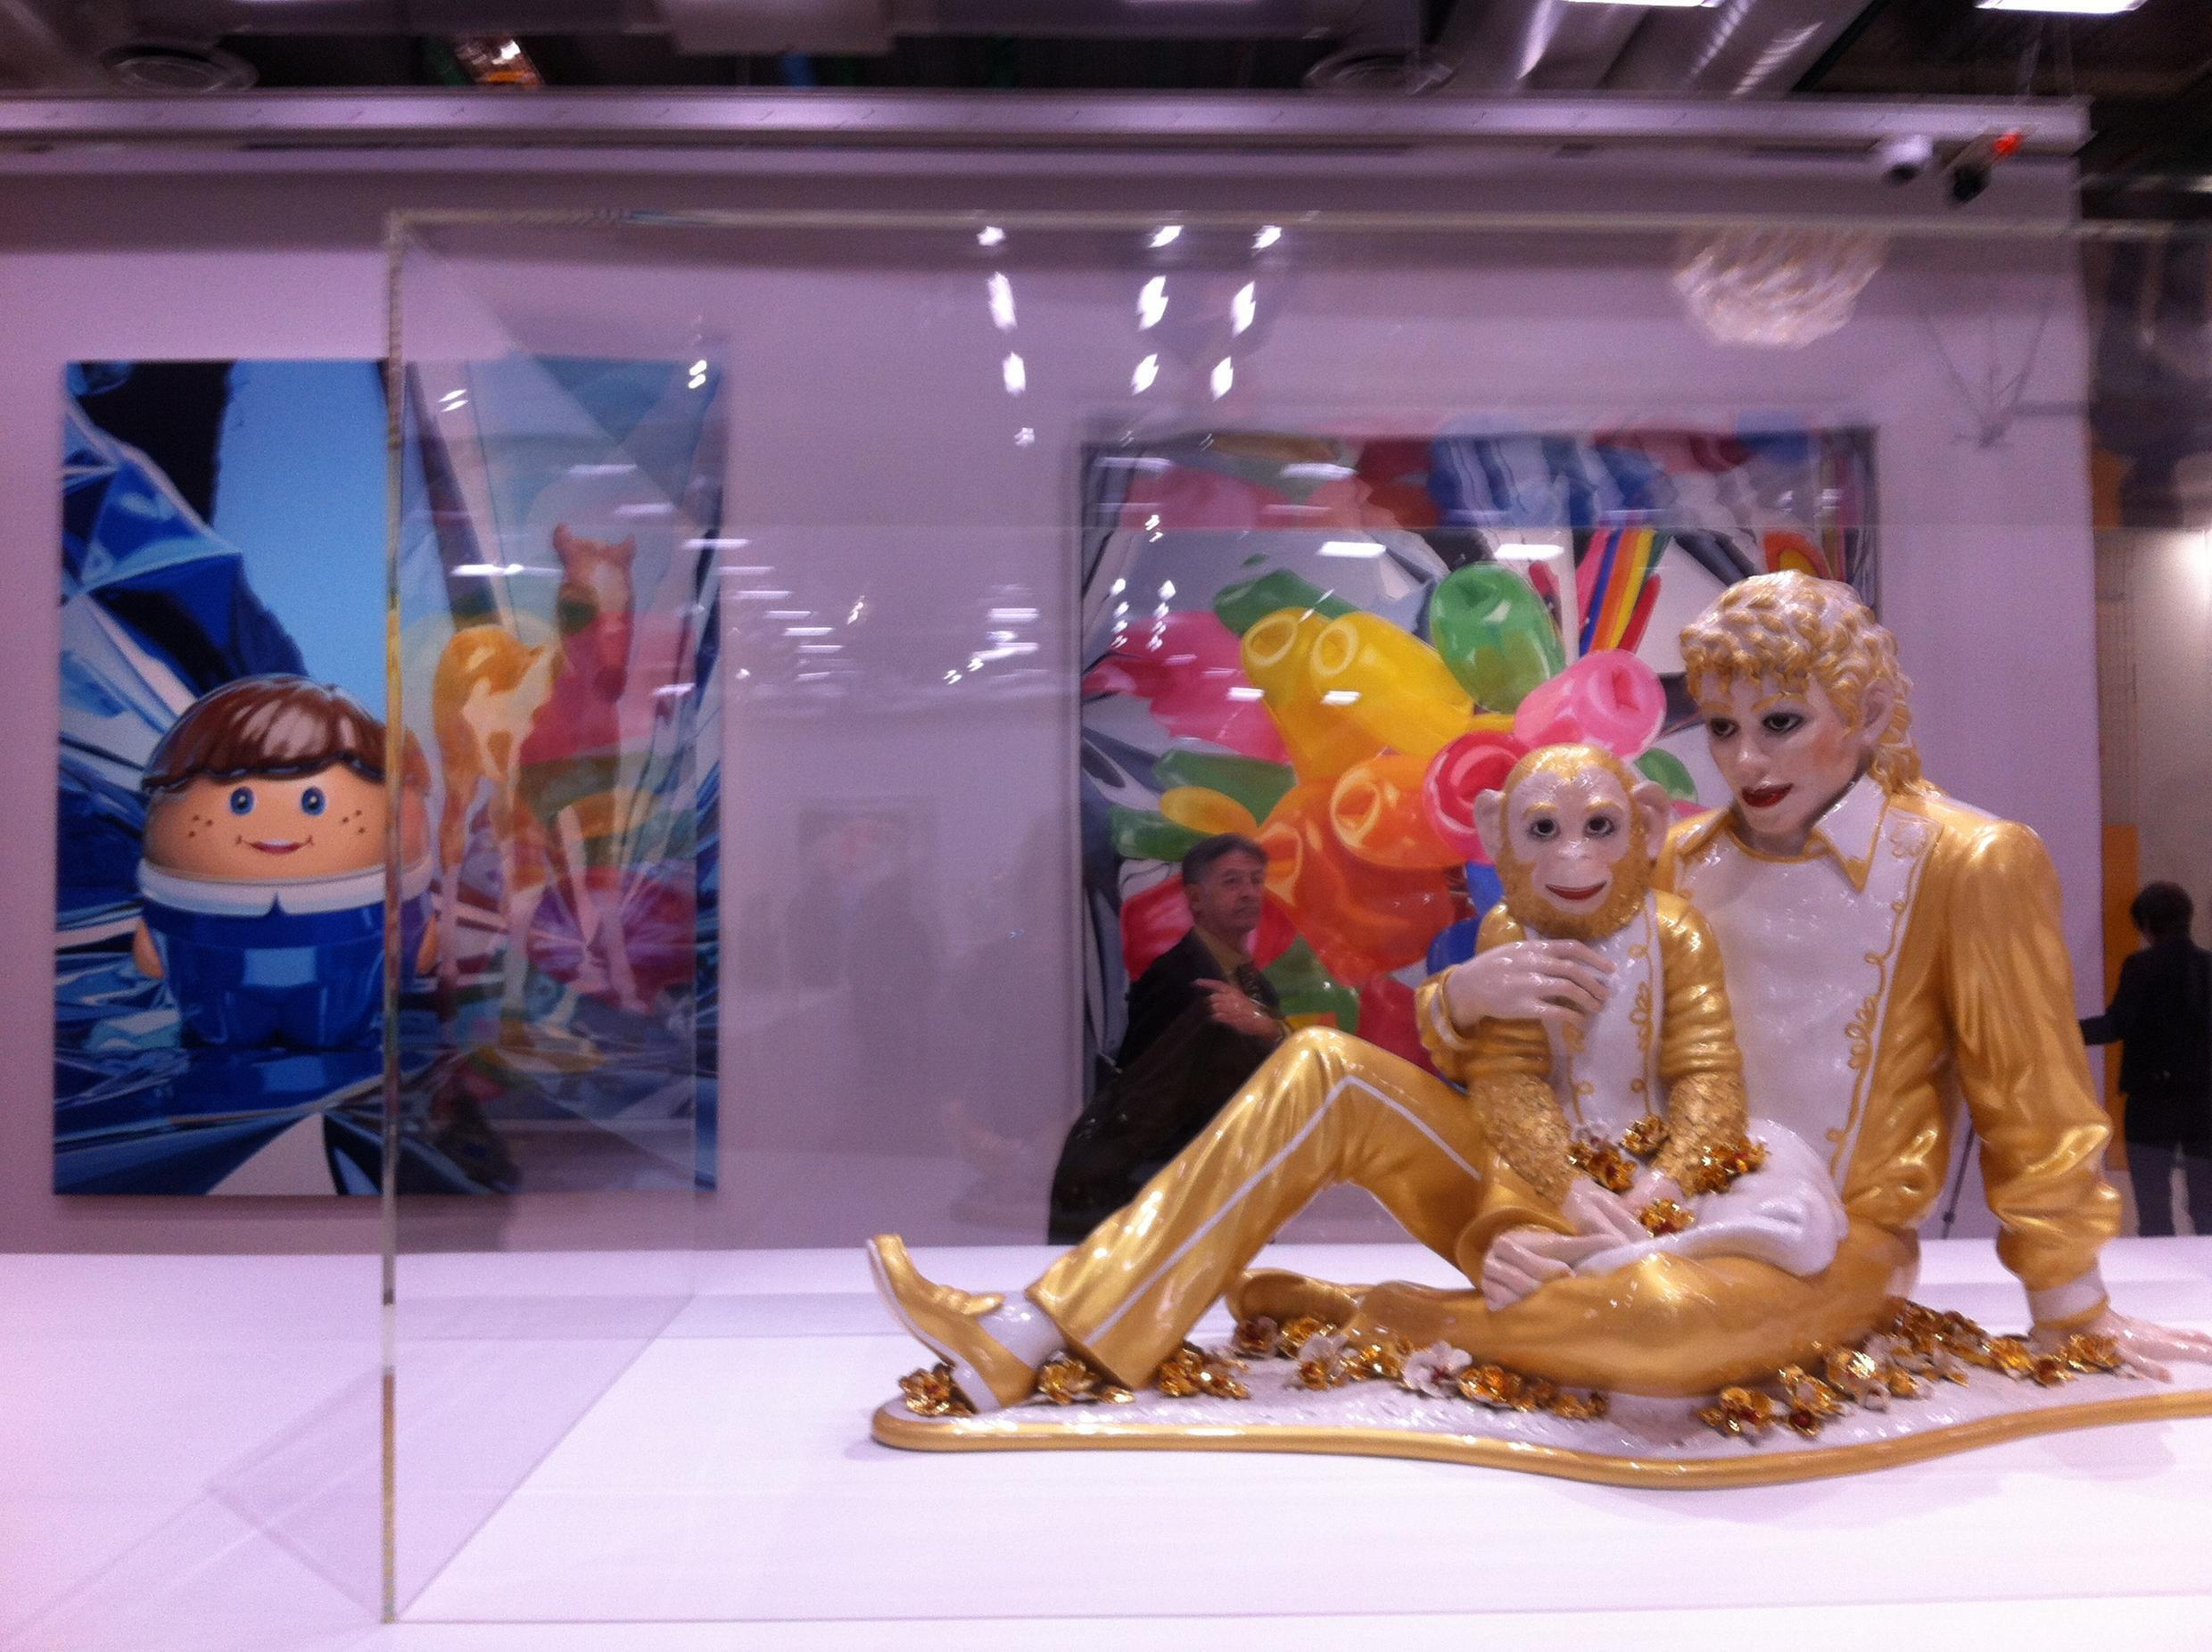 Michael Jackson and Bubbles (1998), porcelain, obra de Jeff Koons exposta na retrospectiva do Centro Pompidou.